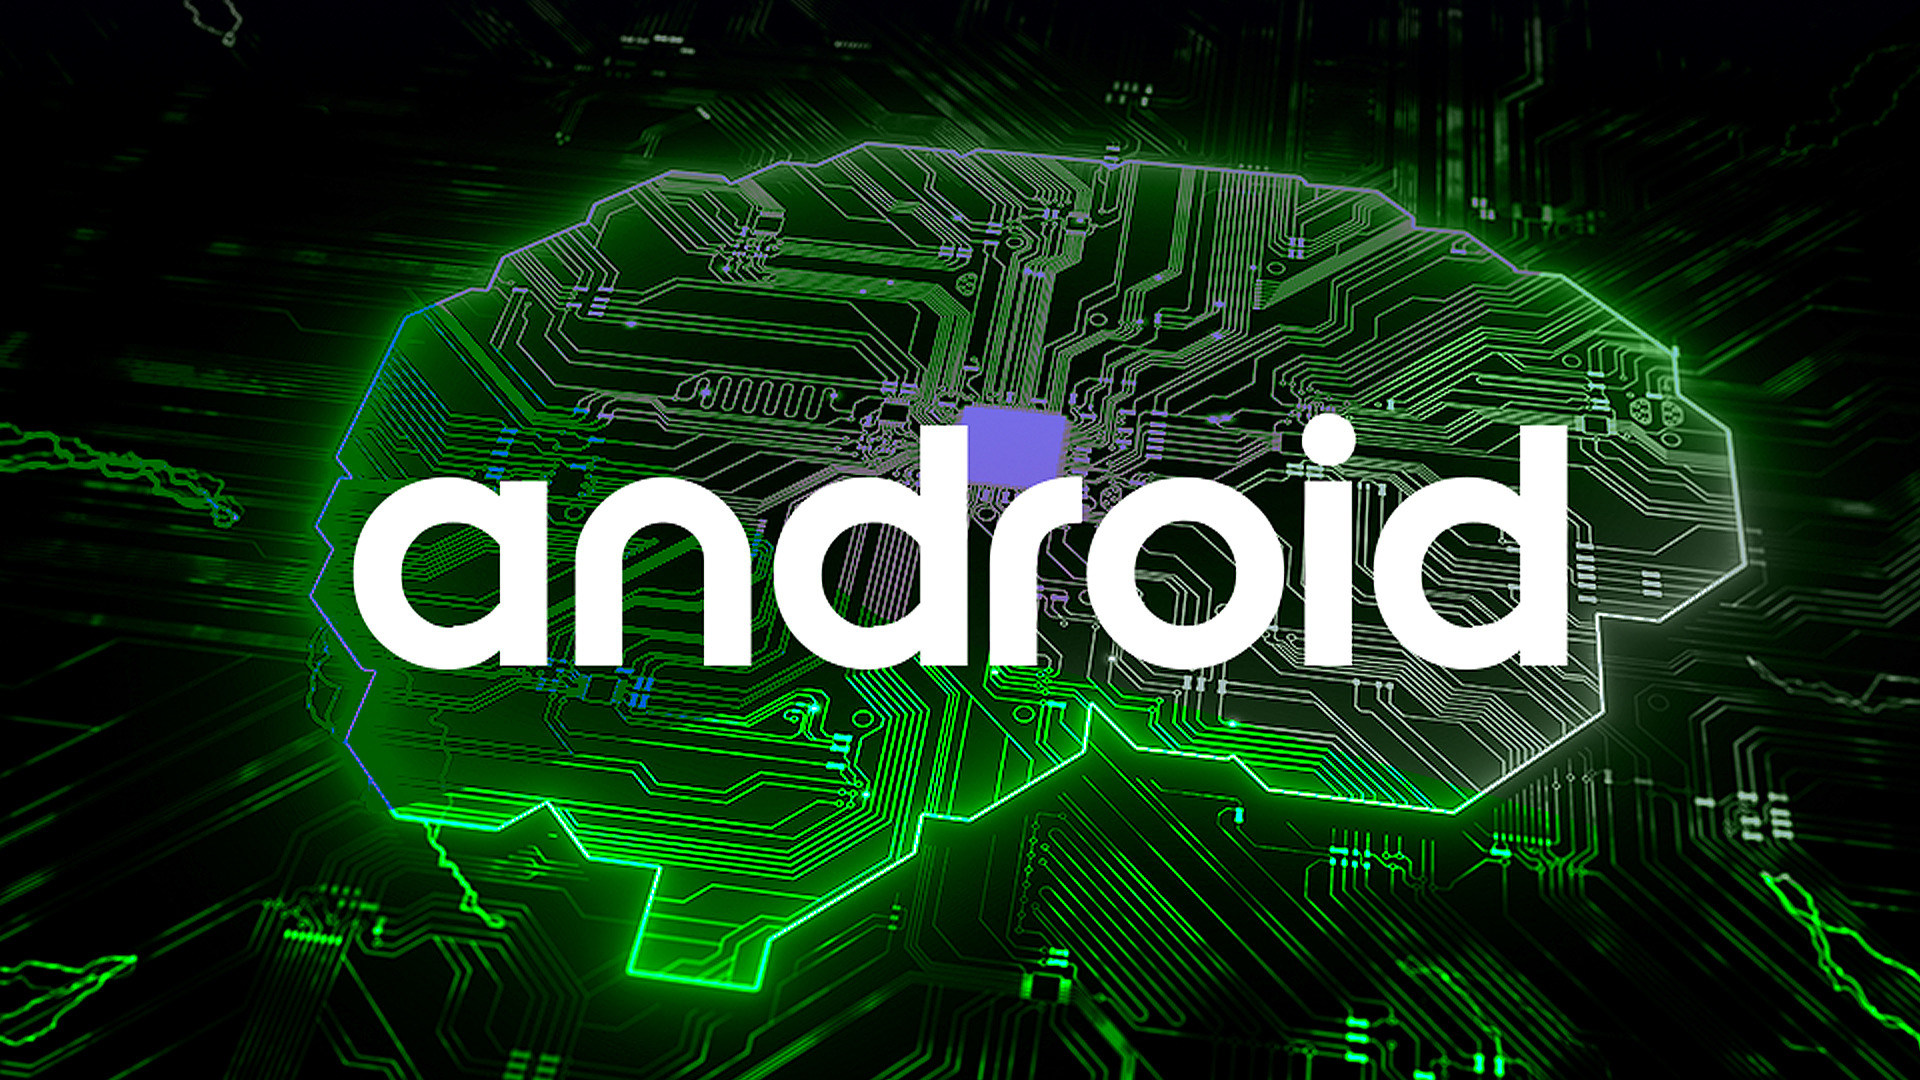 Android, Logo, Google Android, Android 4.0, mobiles Betriebssystem